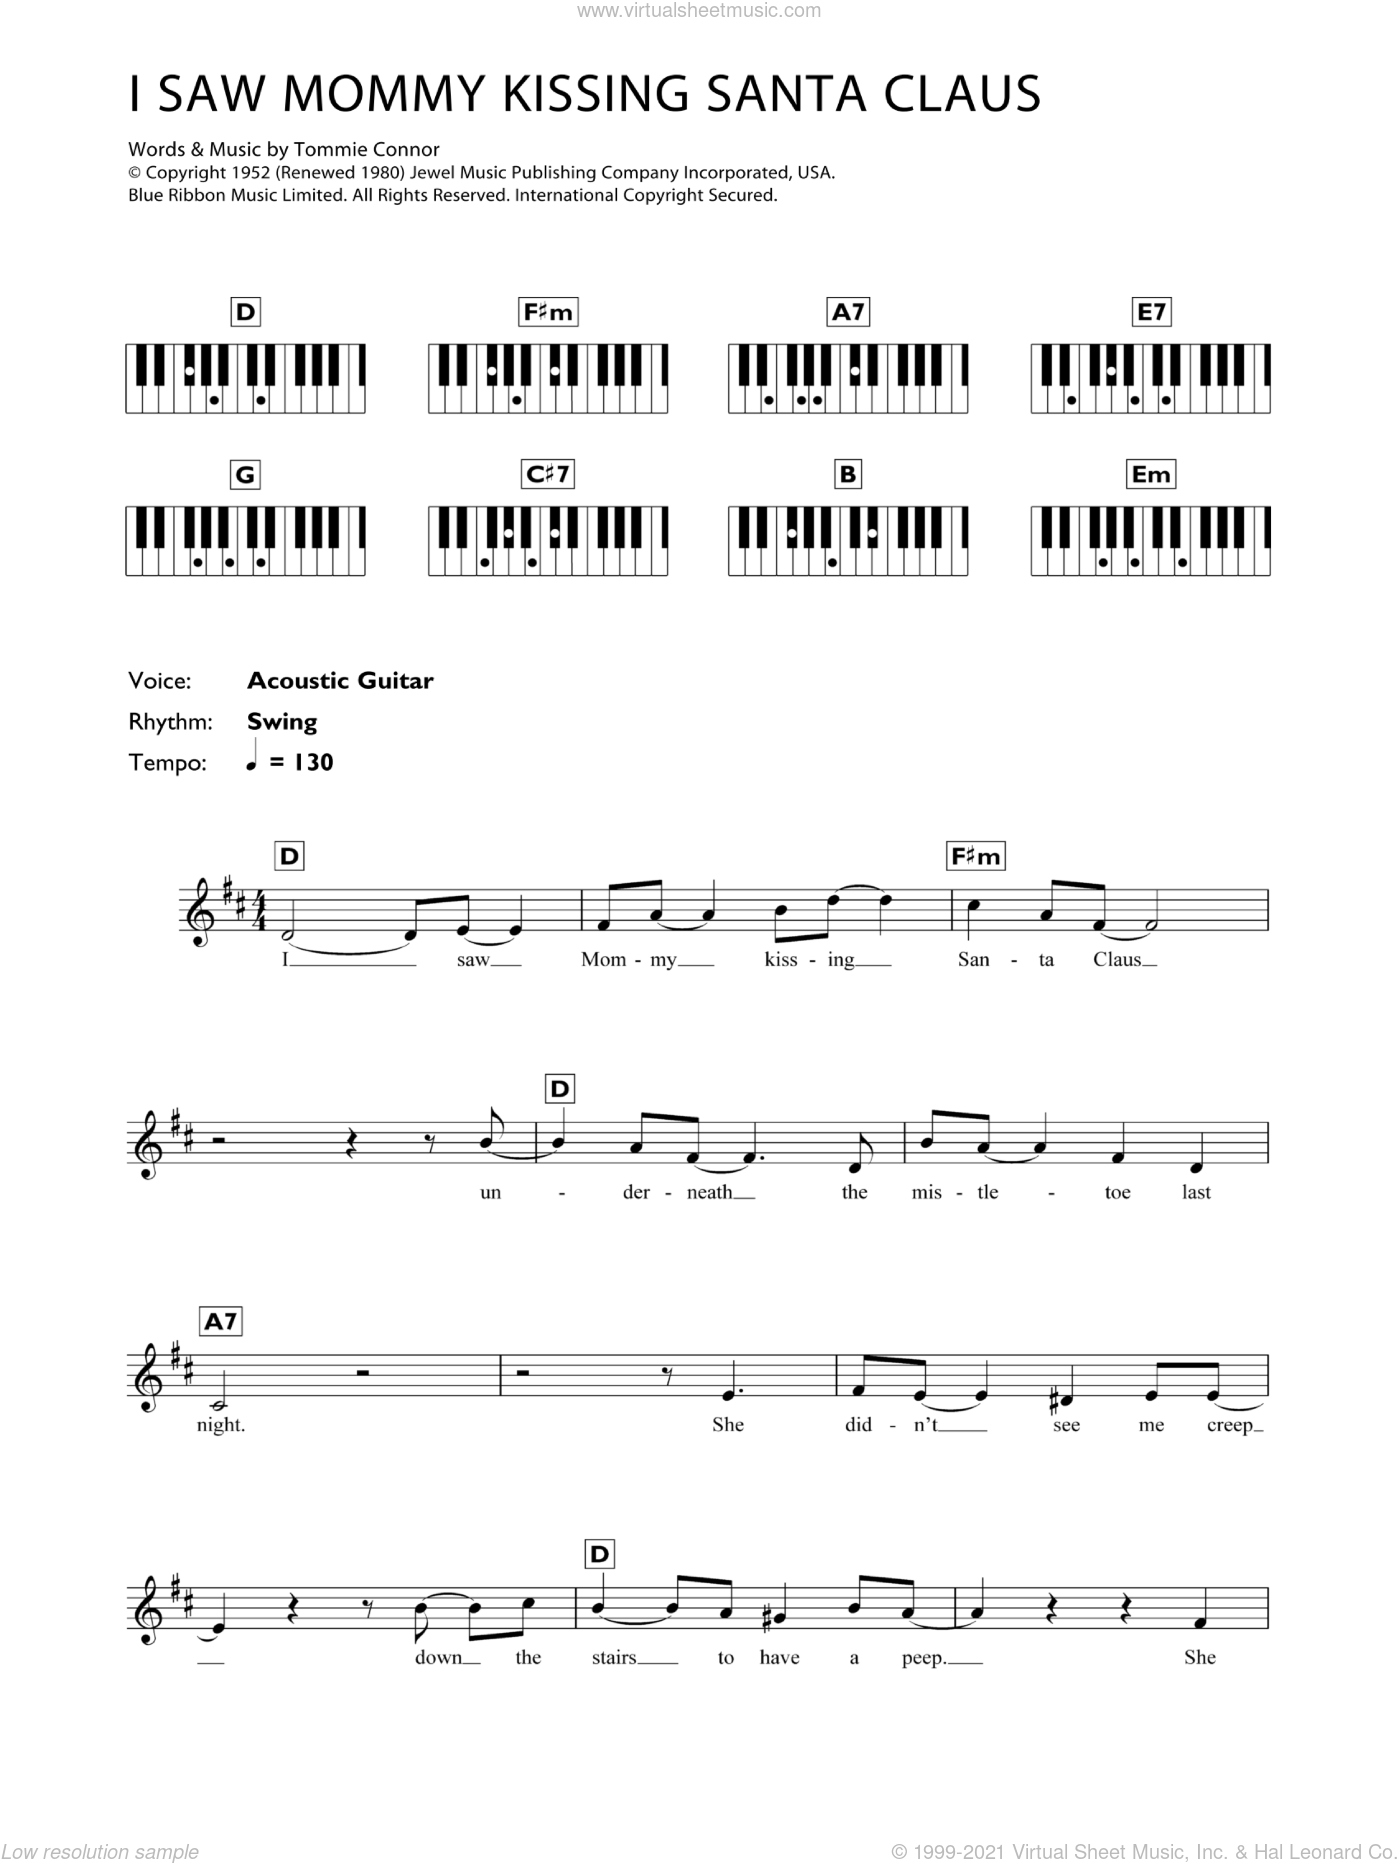 I Saw Mommy Kissing Santa Claus sheet music for piano solo (chords, lyrics, melody) by Tommie Connor